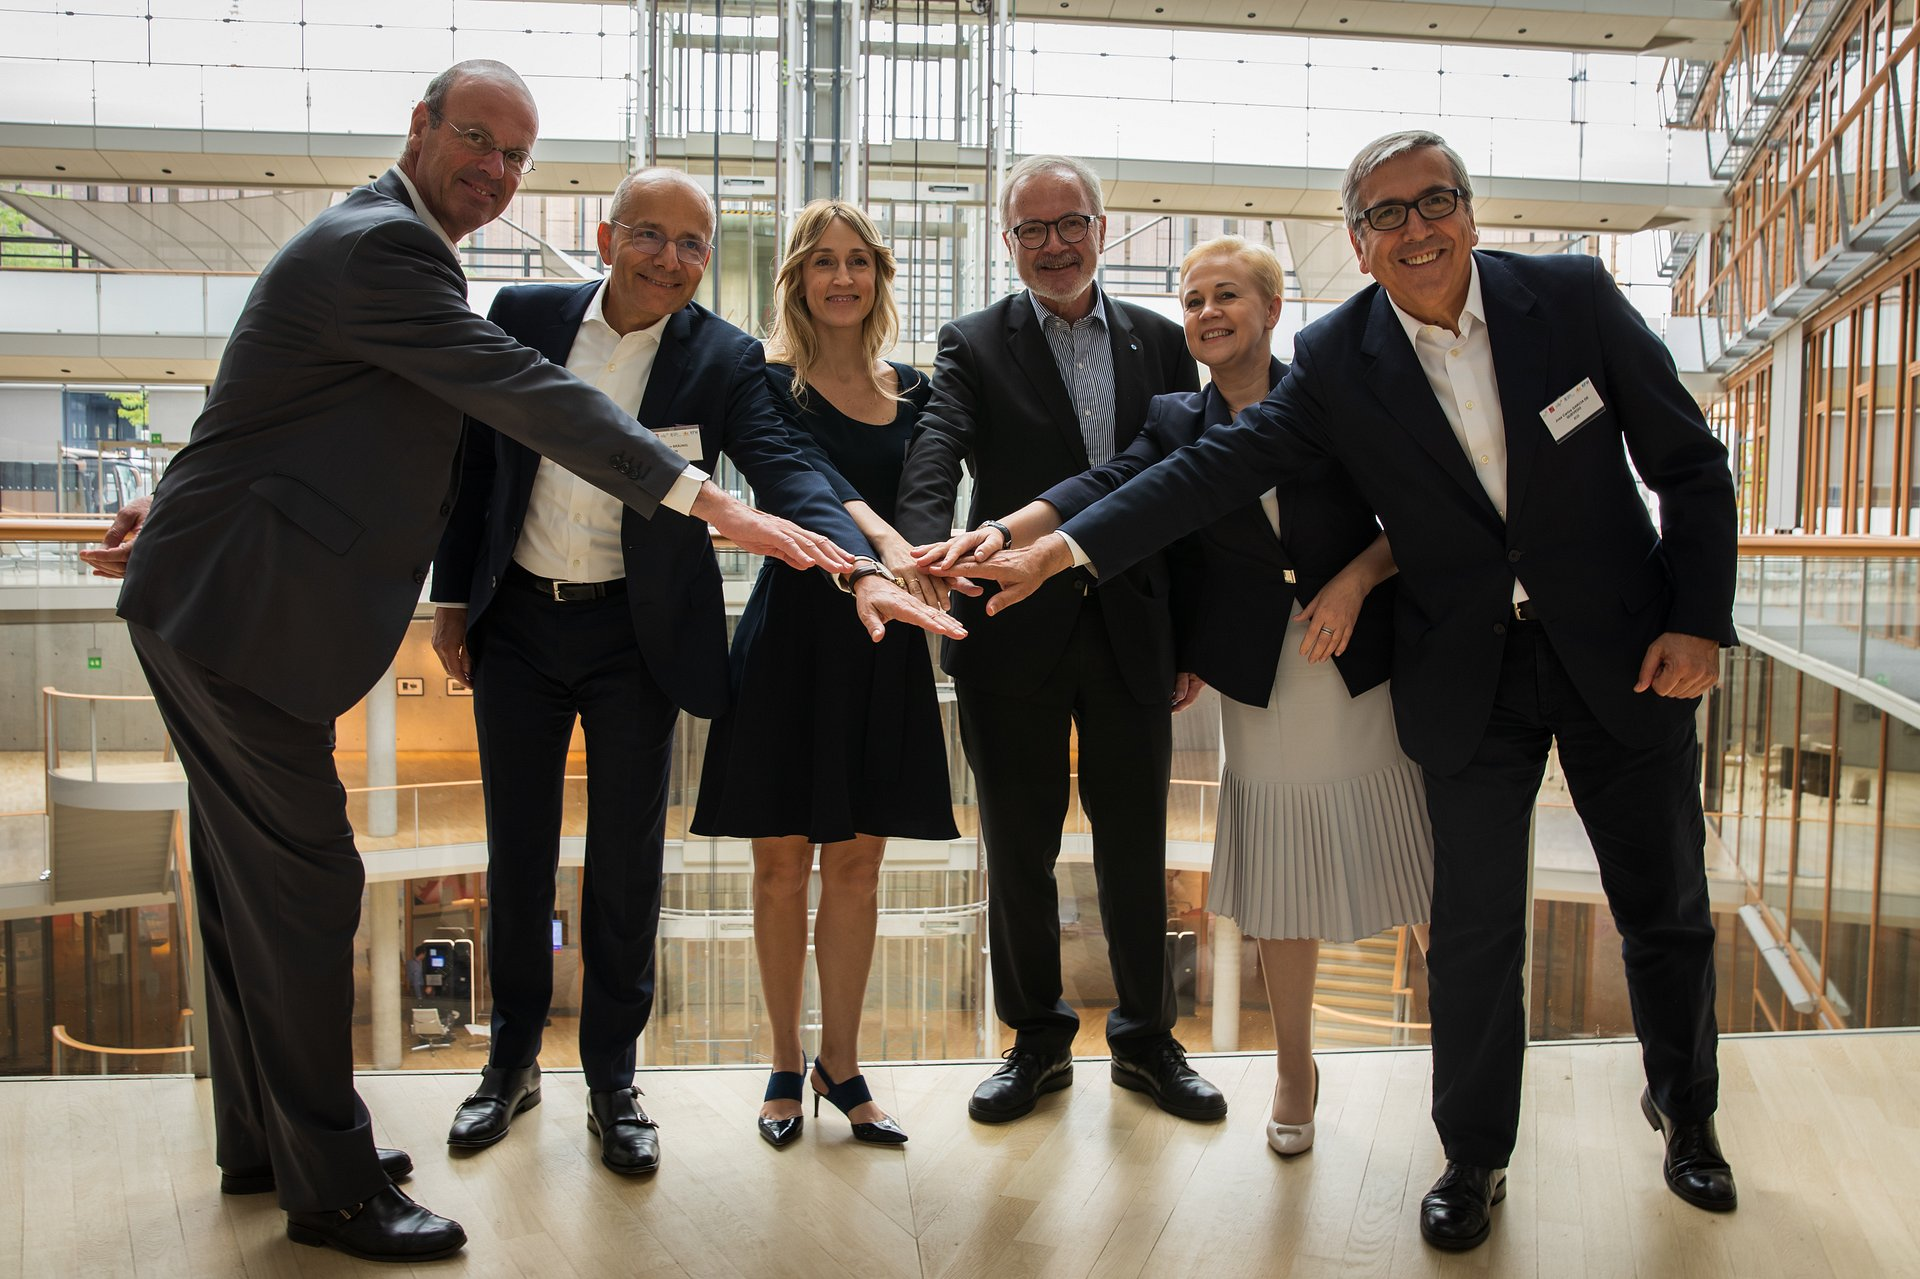 EUR 10 billion to support the Circular Economy in the EU